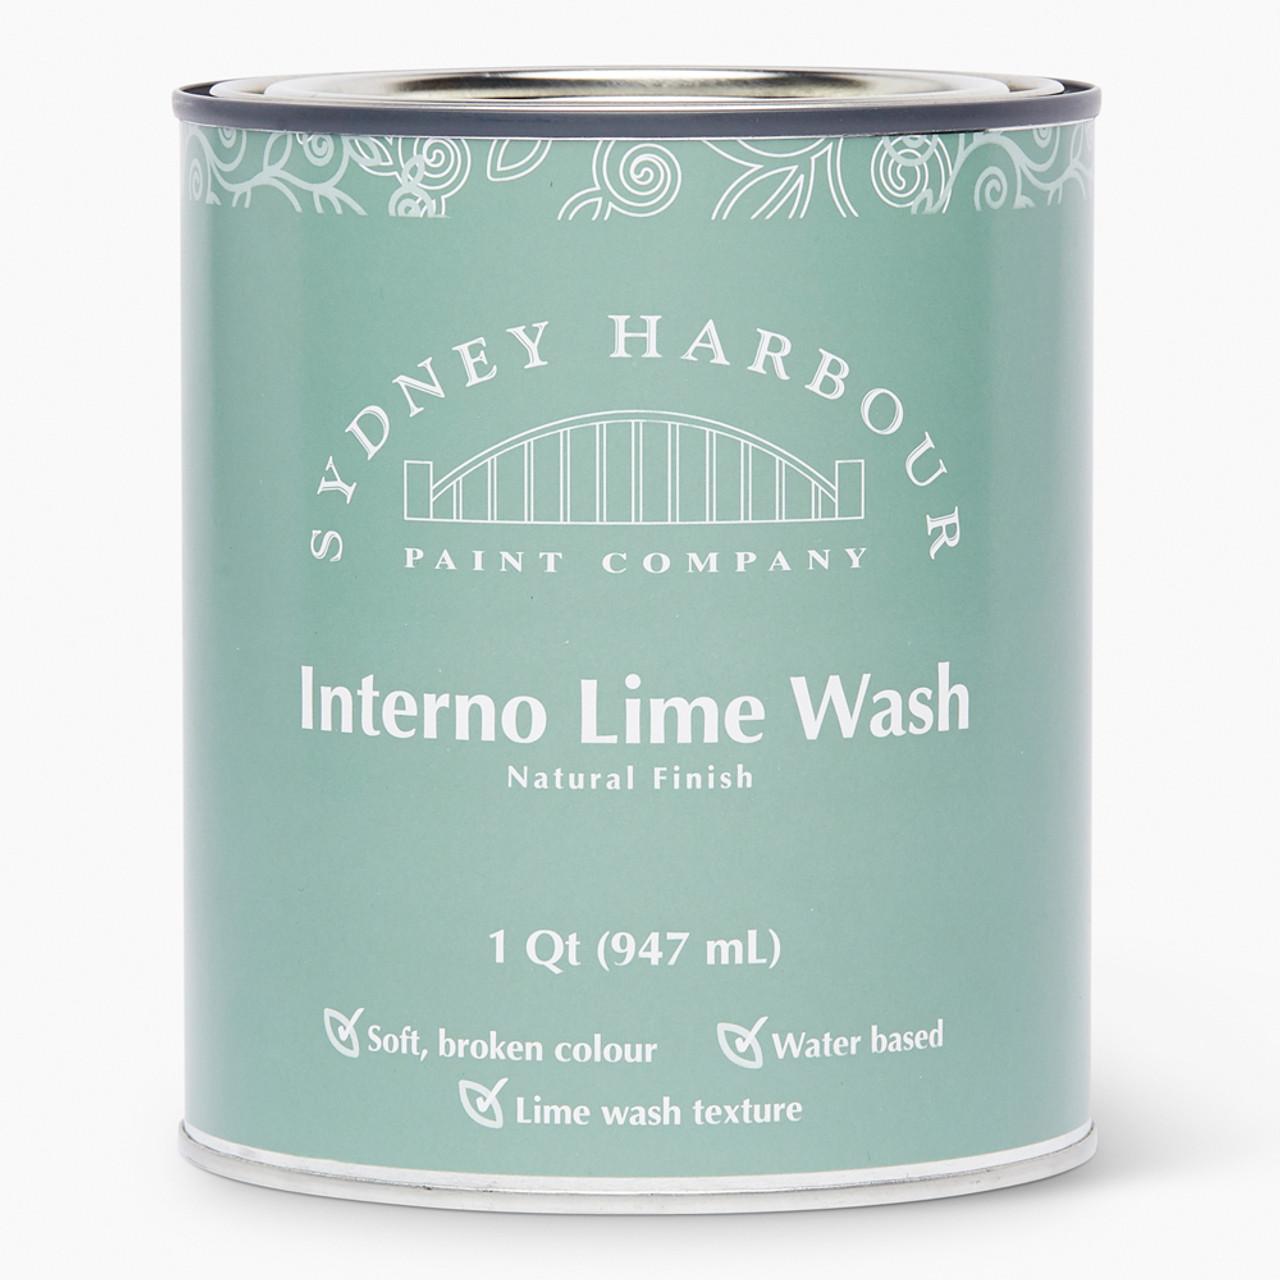 Sydney Harbour Interno Lime Wash